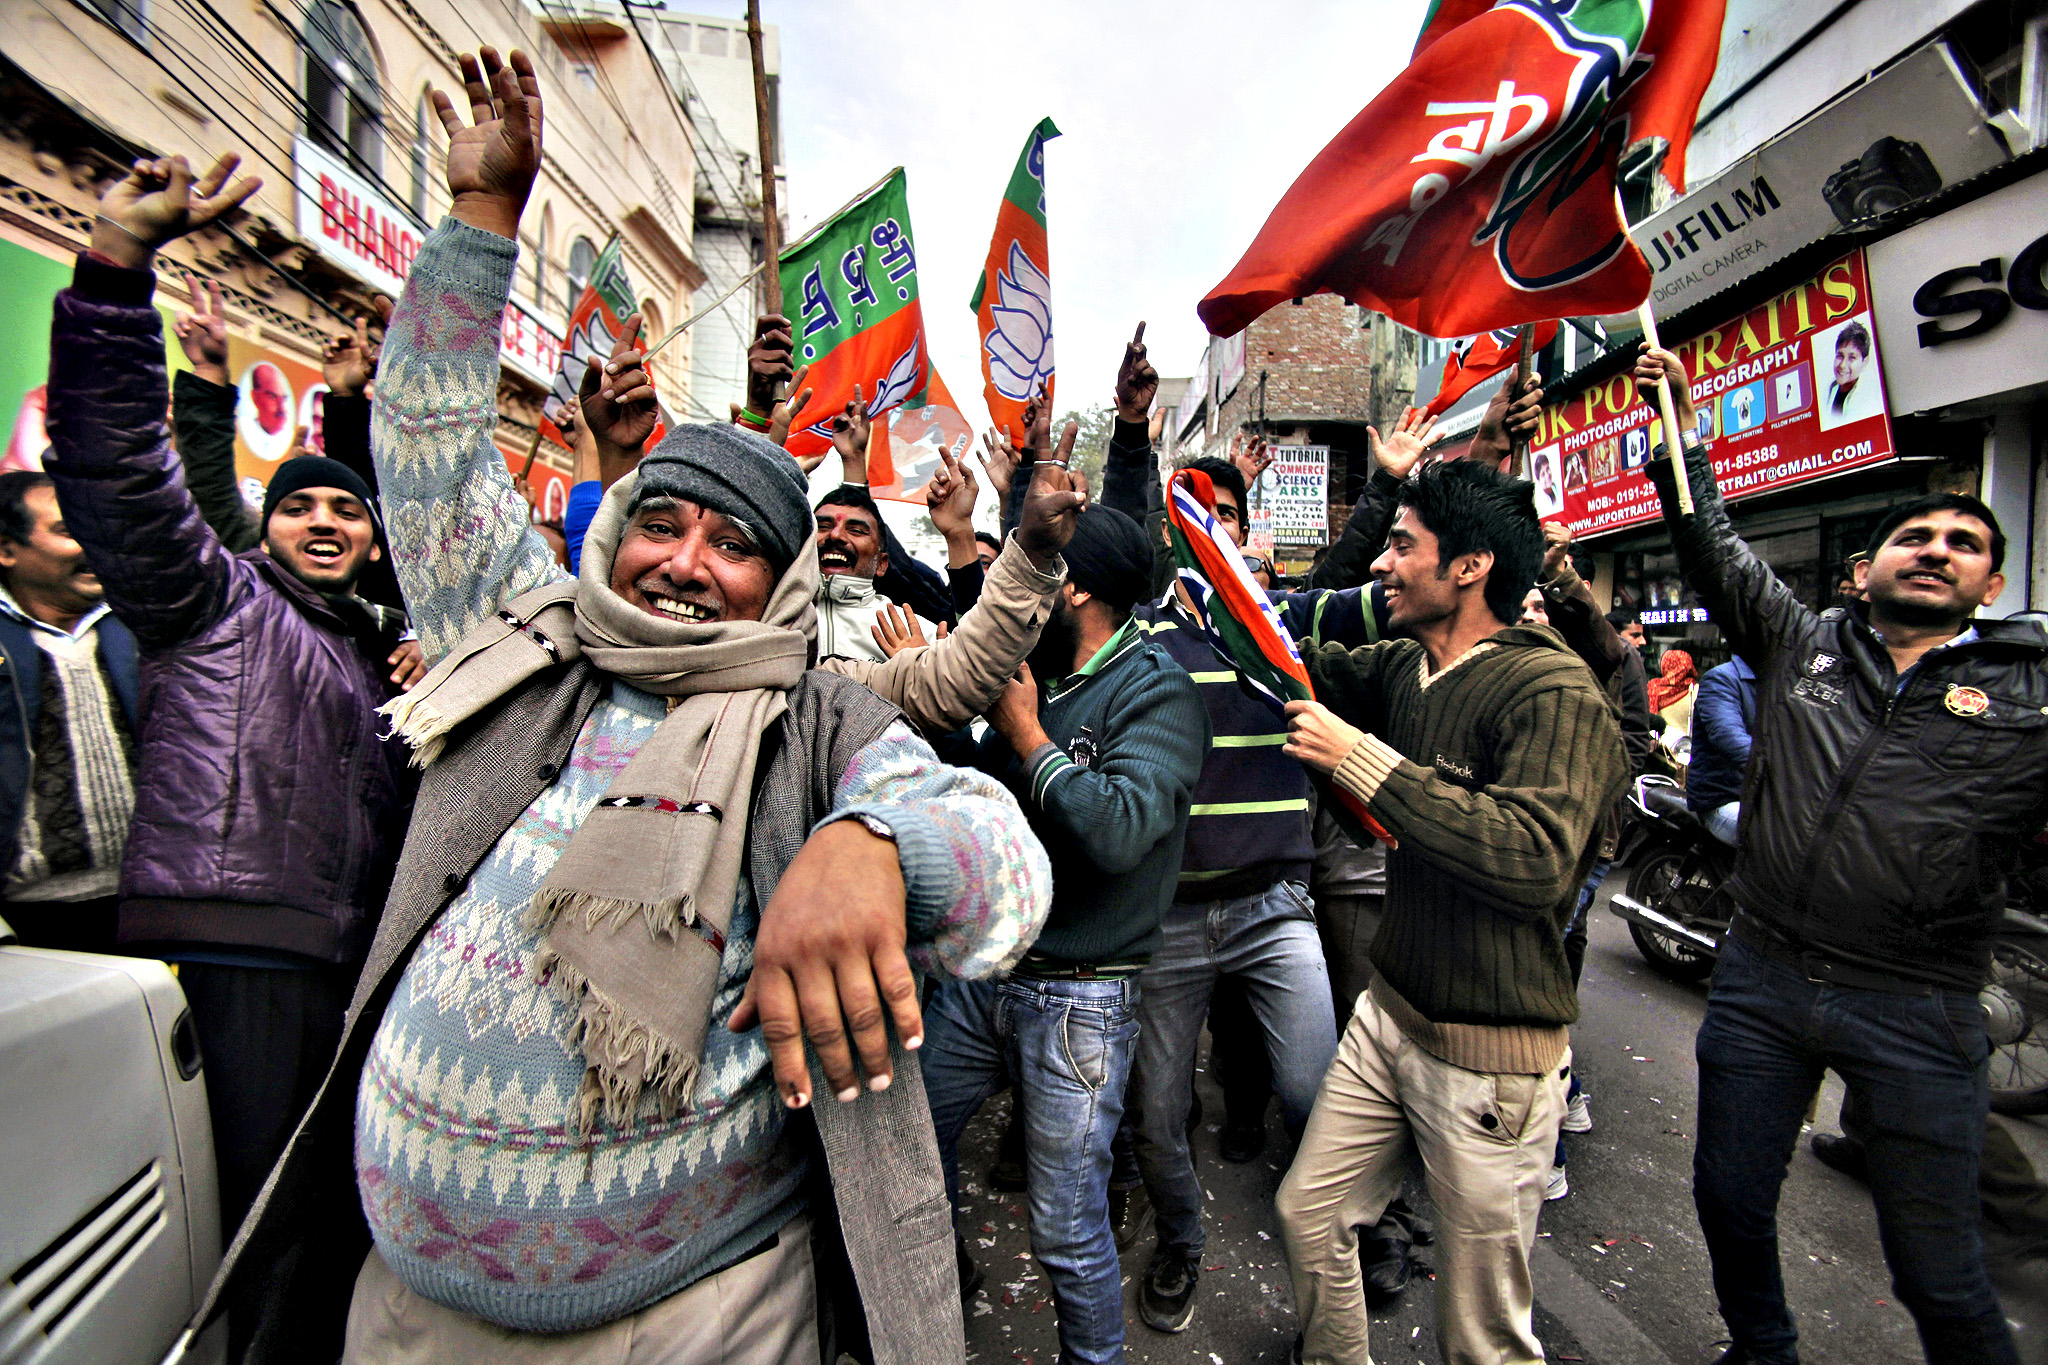 Bharatiya Janata Party (BJP) supporters dance to celebrate the news of early election result trends outside their party headquarters in Jammu, India, Tuesday, Dec. 23, 2014. India's ruling Hindu nationalist Bharatiya Janta Party is poised to emerge as an important political player in the disputed Himalayan region of Kashmir, as votes in local elections are being counted.